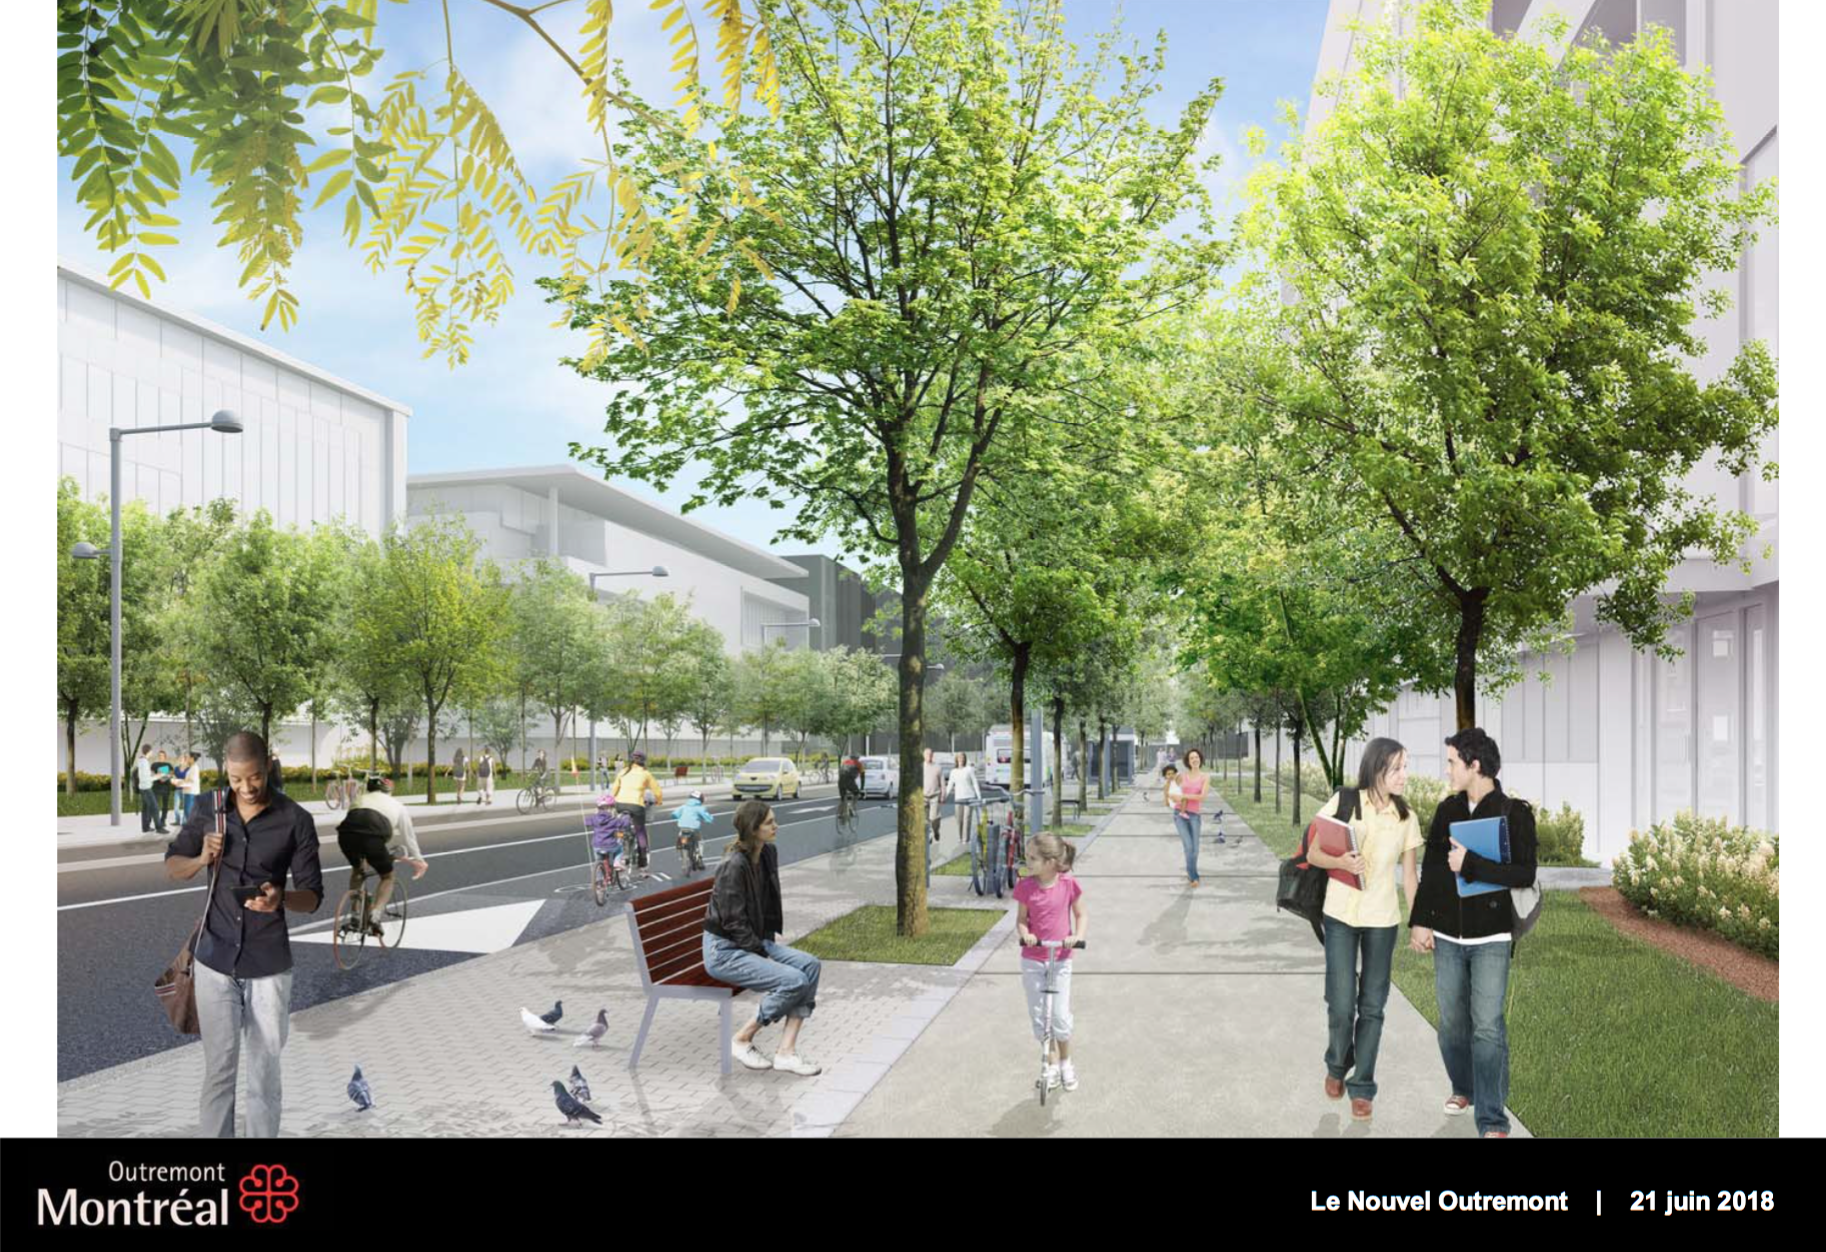 The planned street design in the new Outremont campus development in Montréal (Ville de Montréal).